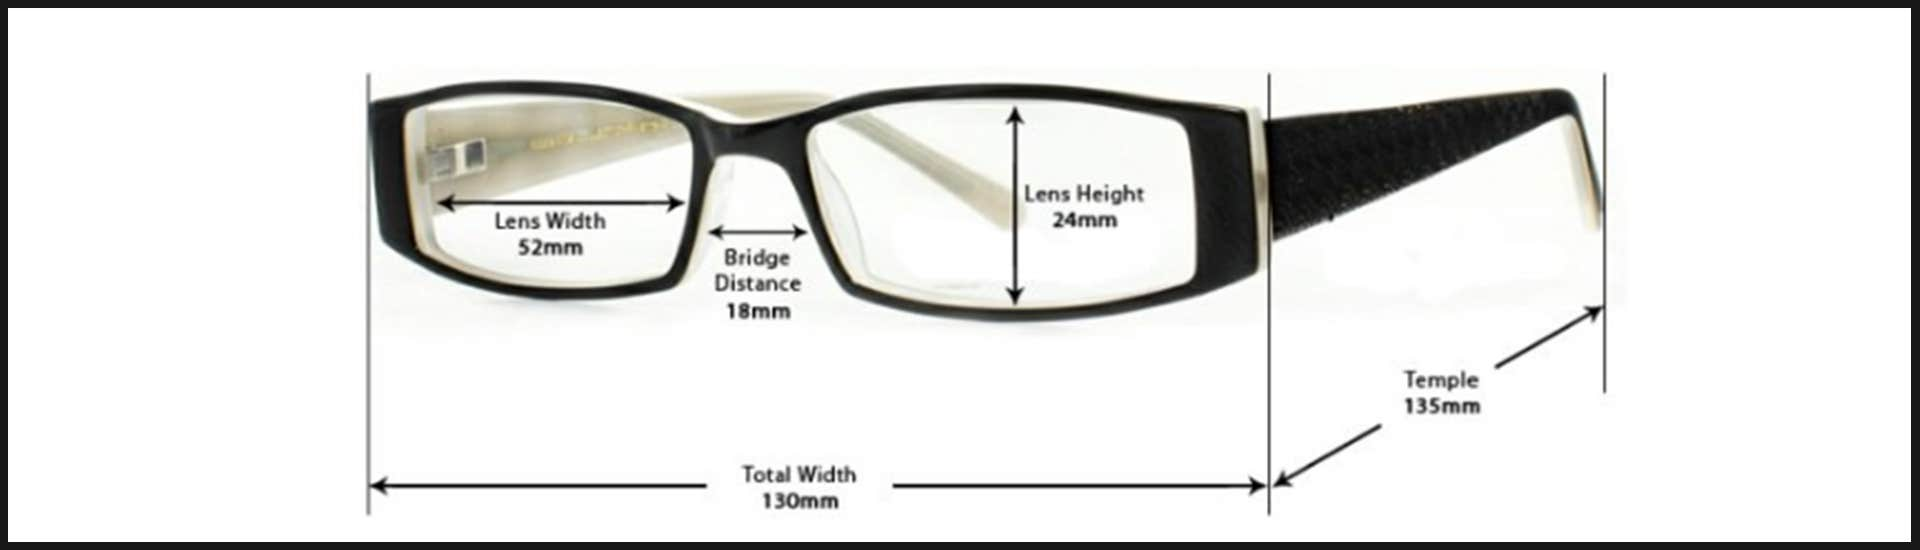 fdedb23fcc58 It is very vital to know that these sizes are printed on the inside behind  the nose bridge of your eyeglass temples area.